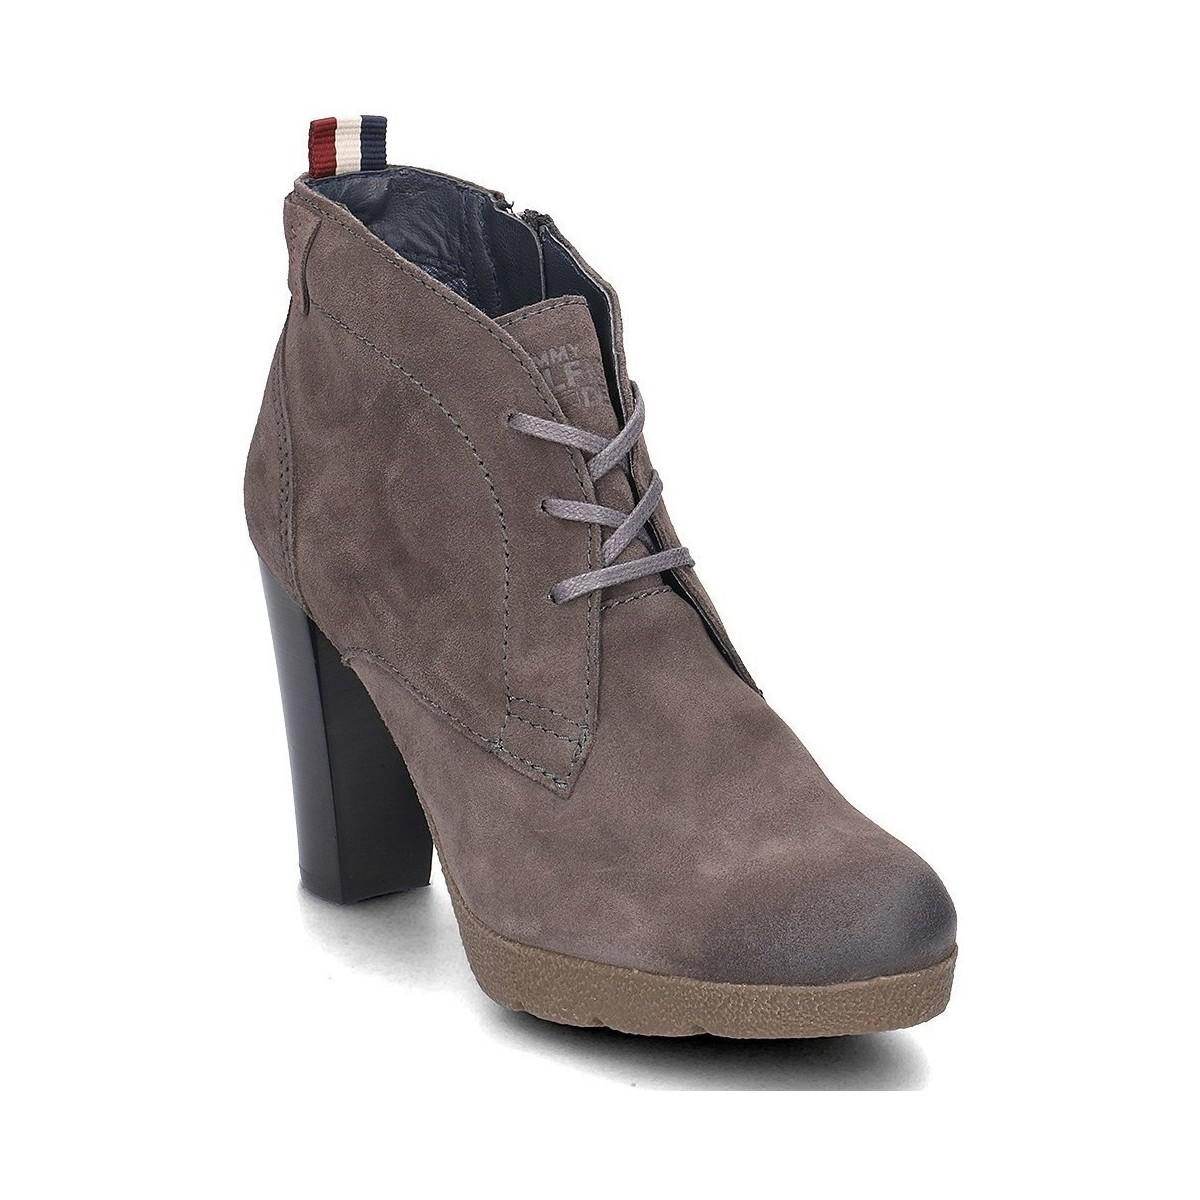 Tommy Hilfiger SAGE 8B women's Low Ankle Boots in Get Authentic Online Ebay Online Free Shipping For Cheap qdDg5IetKq